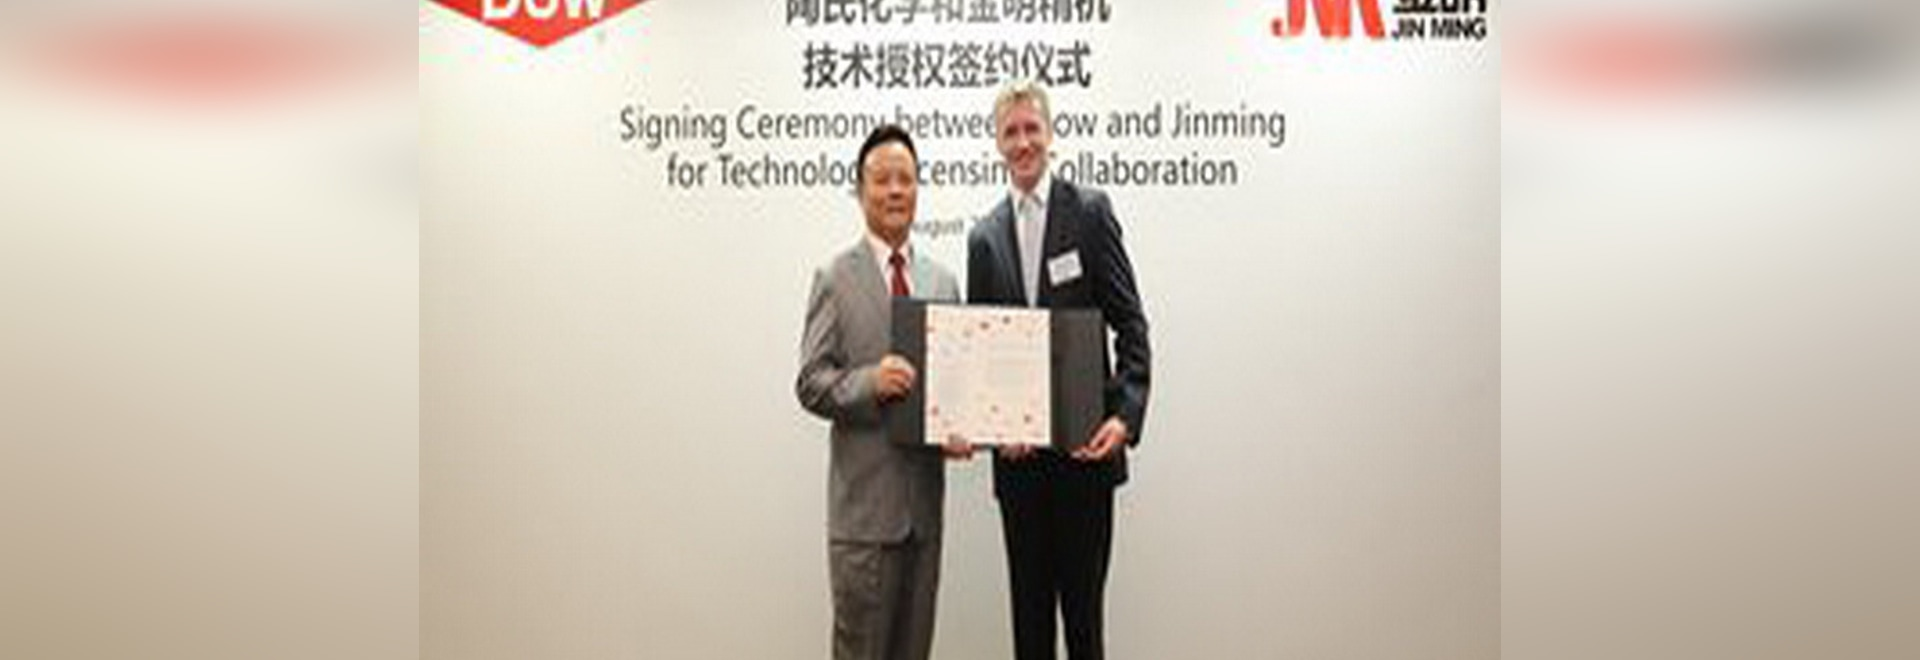 Dow Packaging and Specialty Plastics marks its first innovative technology licensing agreement with Jinming Machinery in Asia